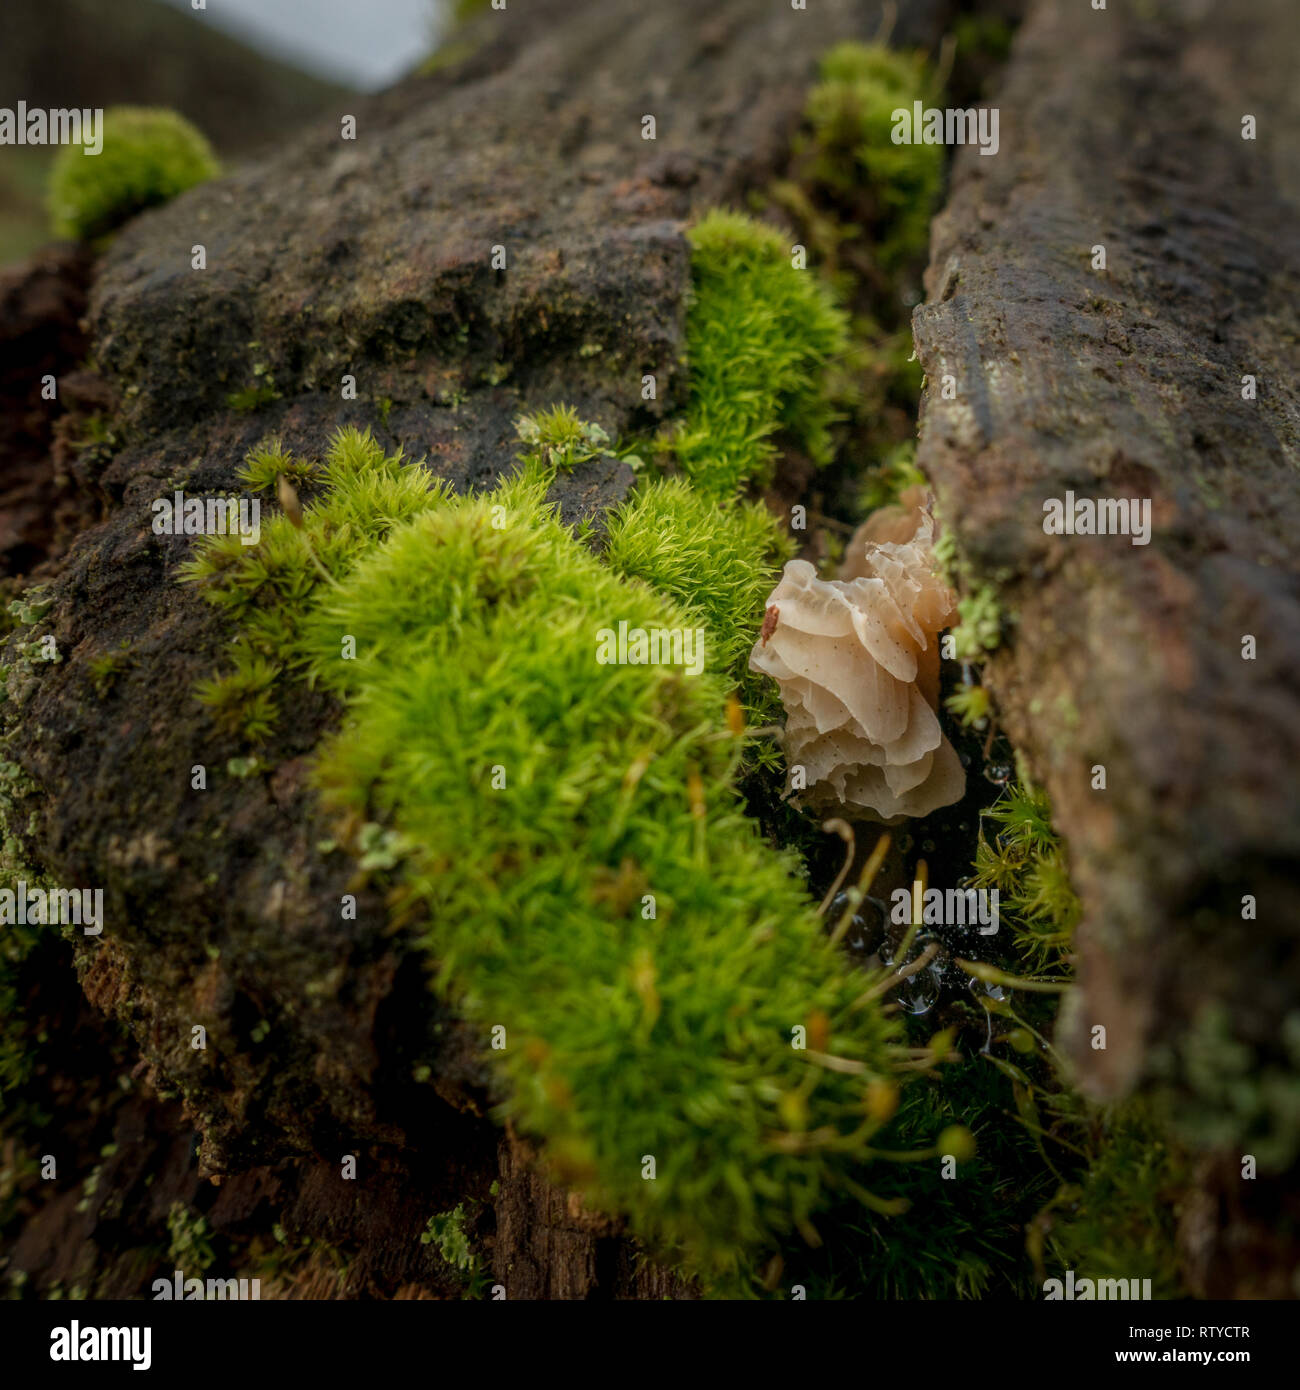 Small white papery fungi growing on a dead tree branch (likely Auricularia mesenterica, Tripe Fungus), UK Stock Photo